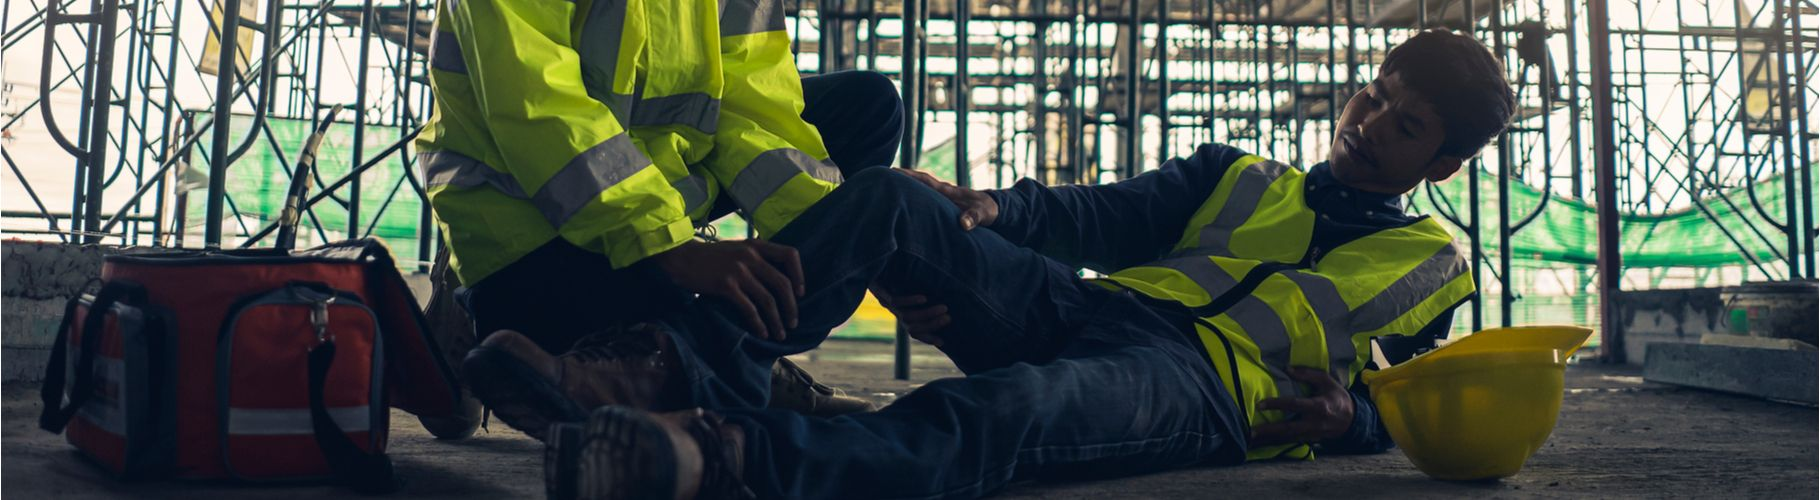 Compensation for injuries at work